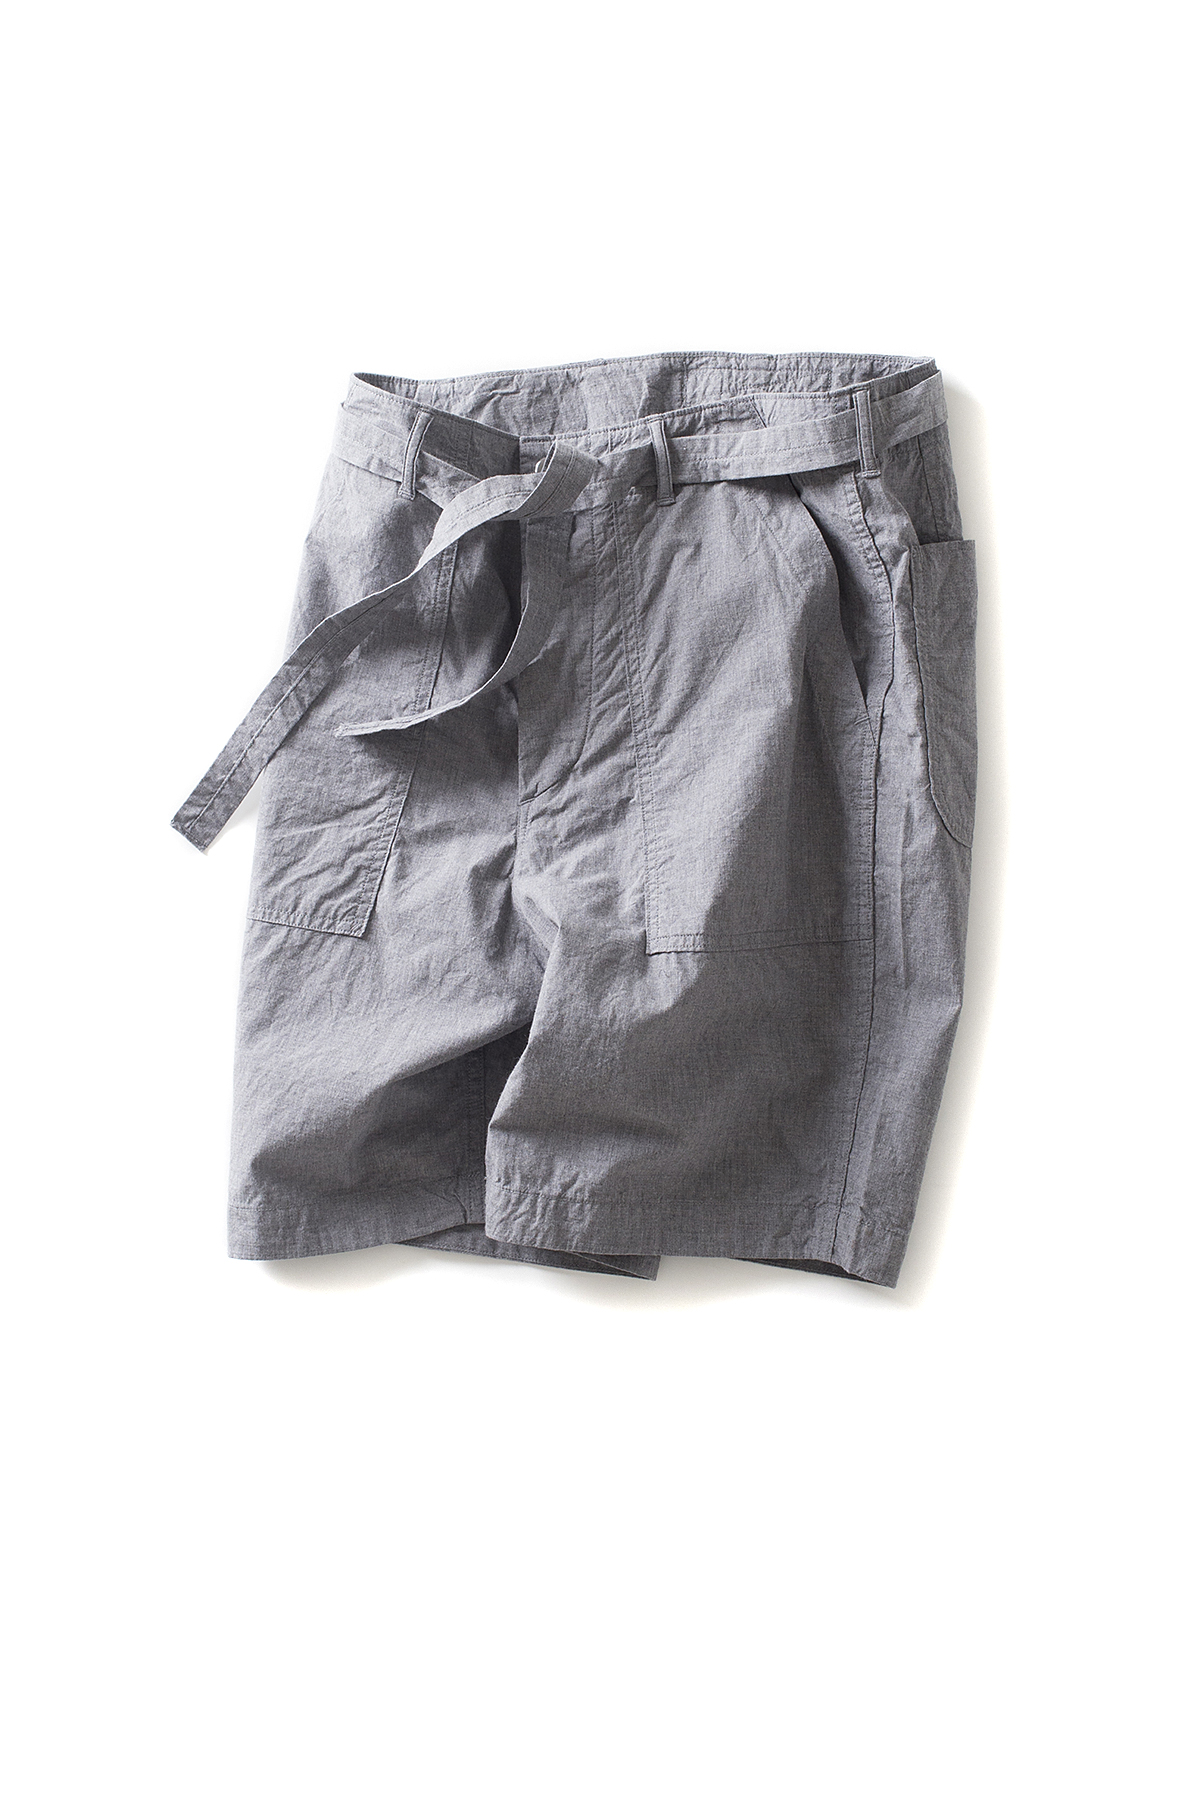 A vontade : Utility Shorts  W/Belt (Grey Top)